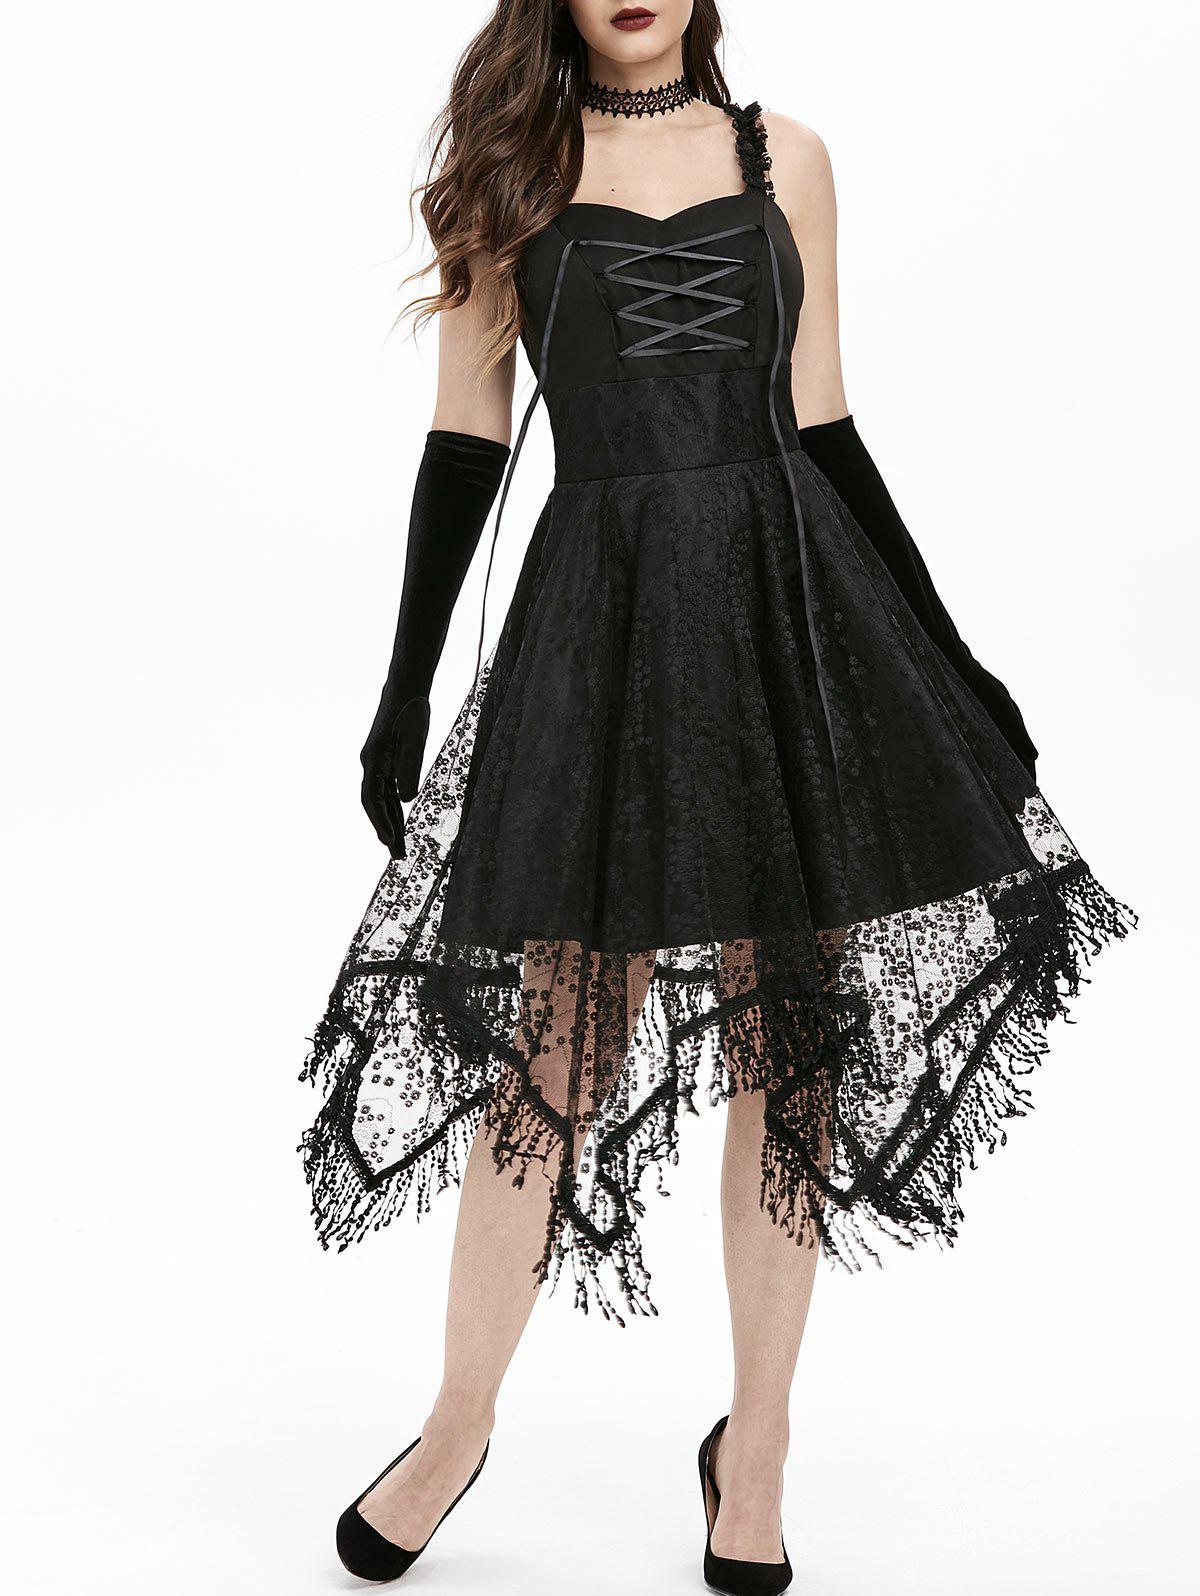 Lace-up Fringed Handkerchief Lace Dress - BLACK M